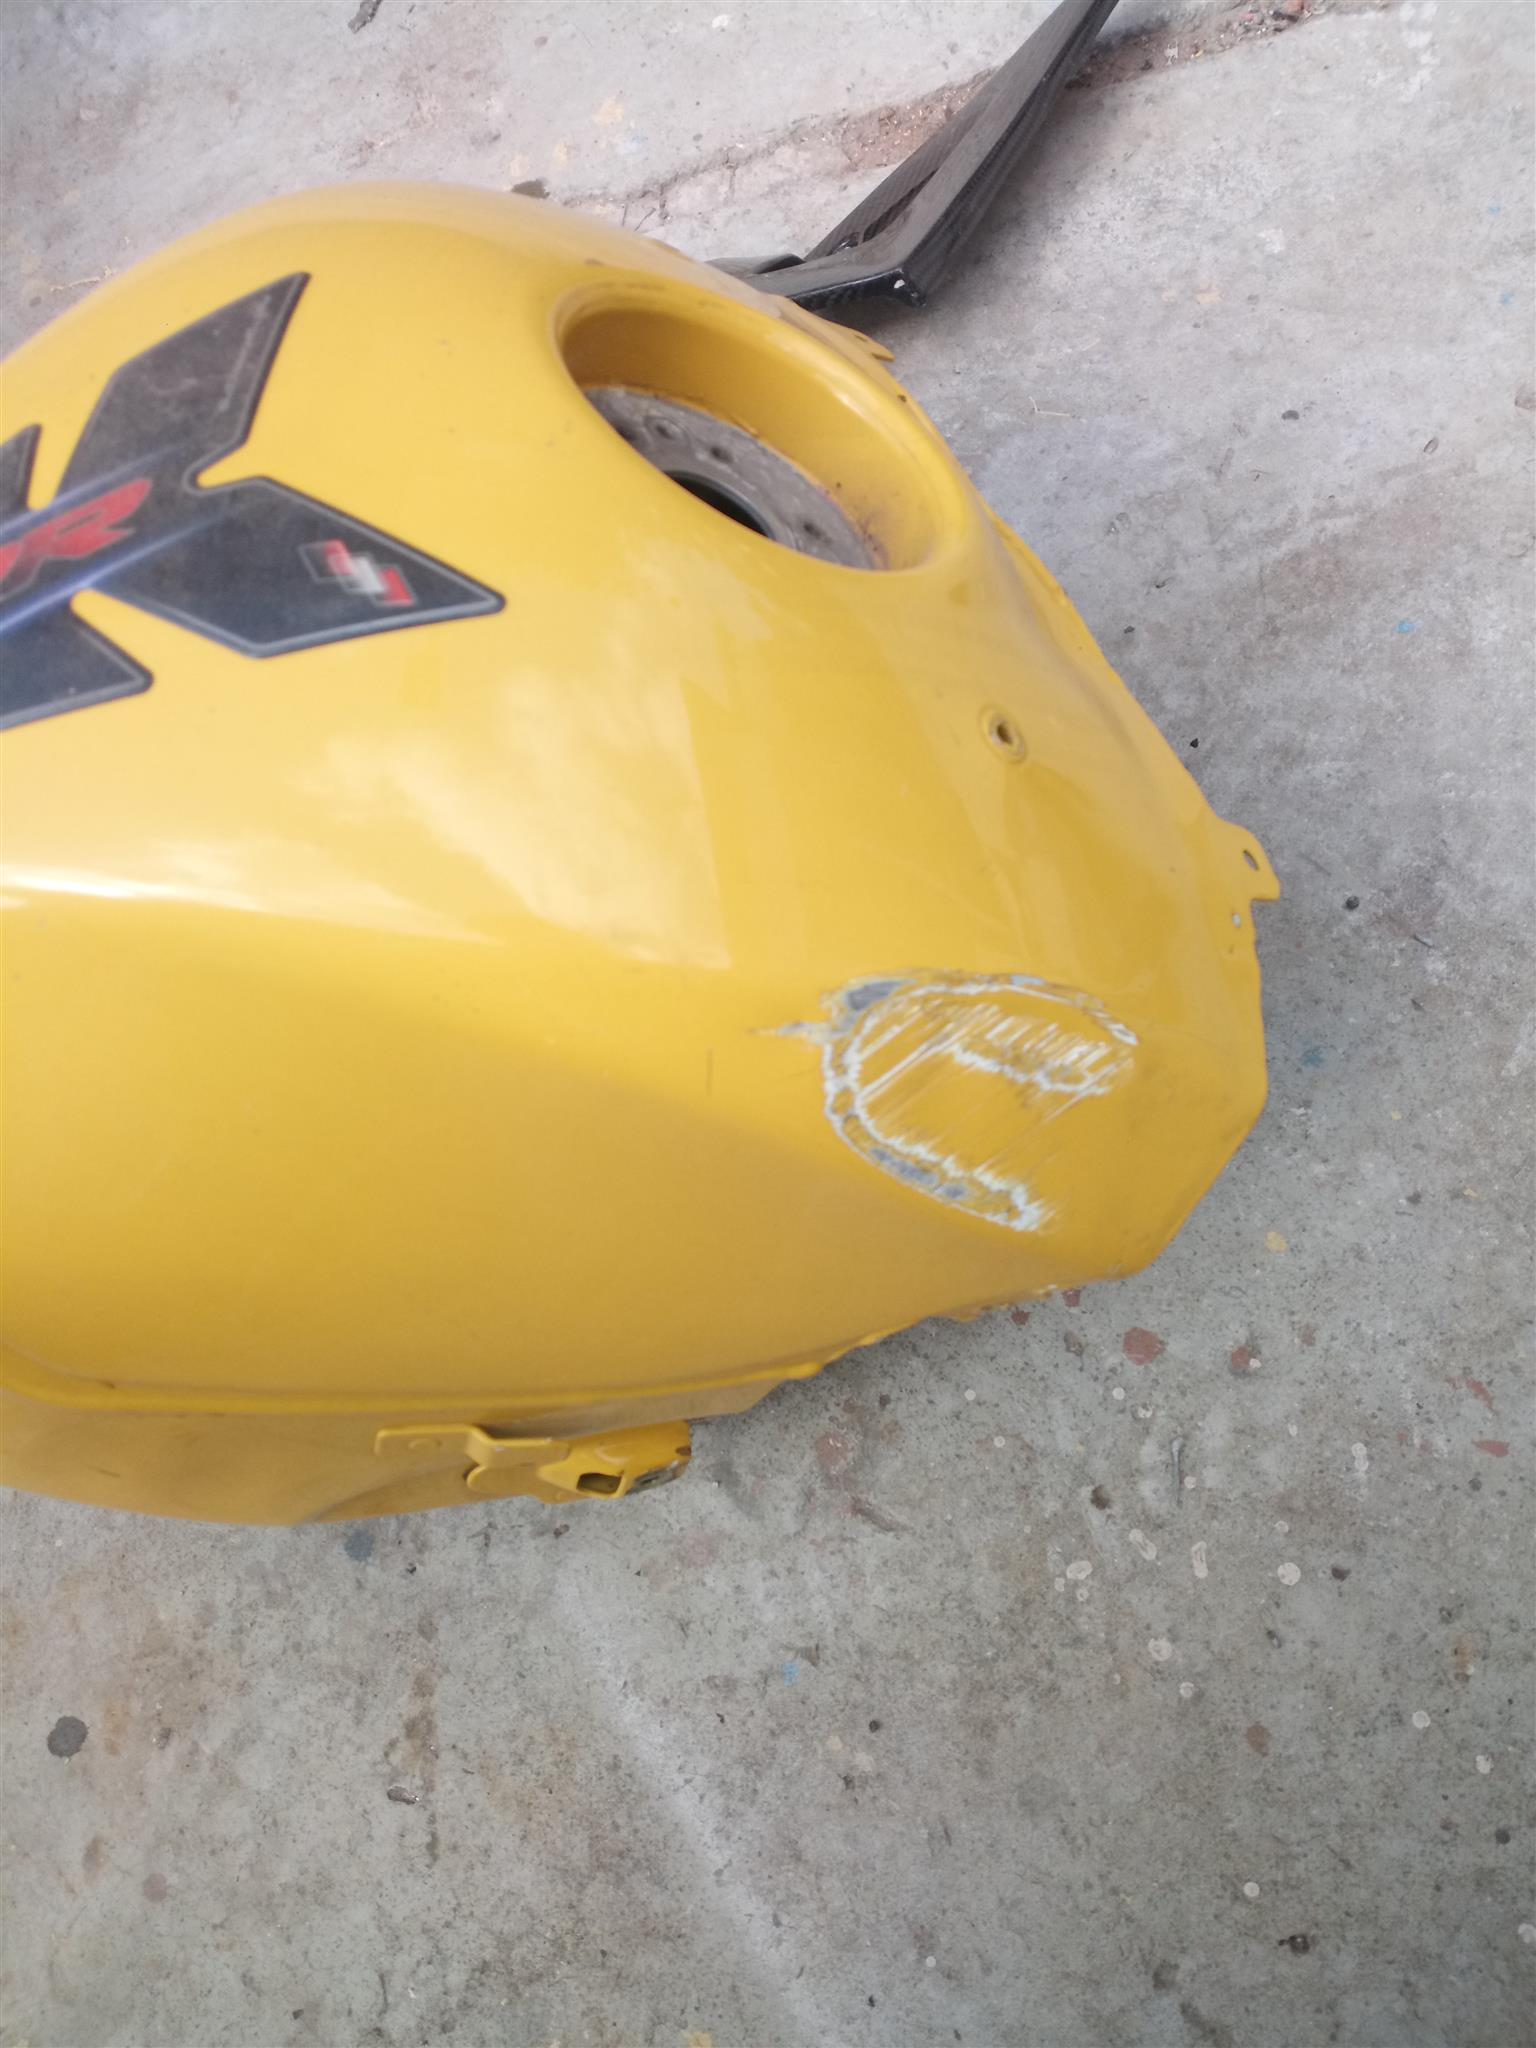 Bmw1000rr tank and various other n parts